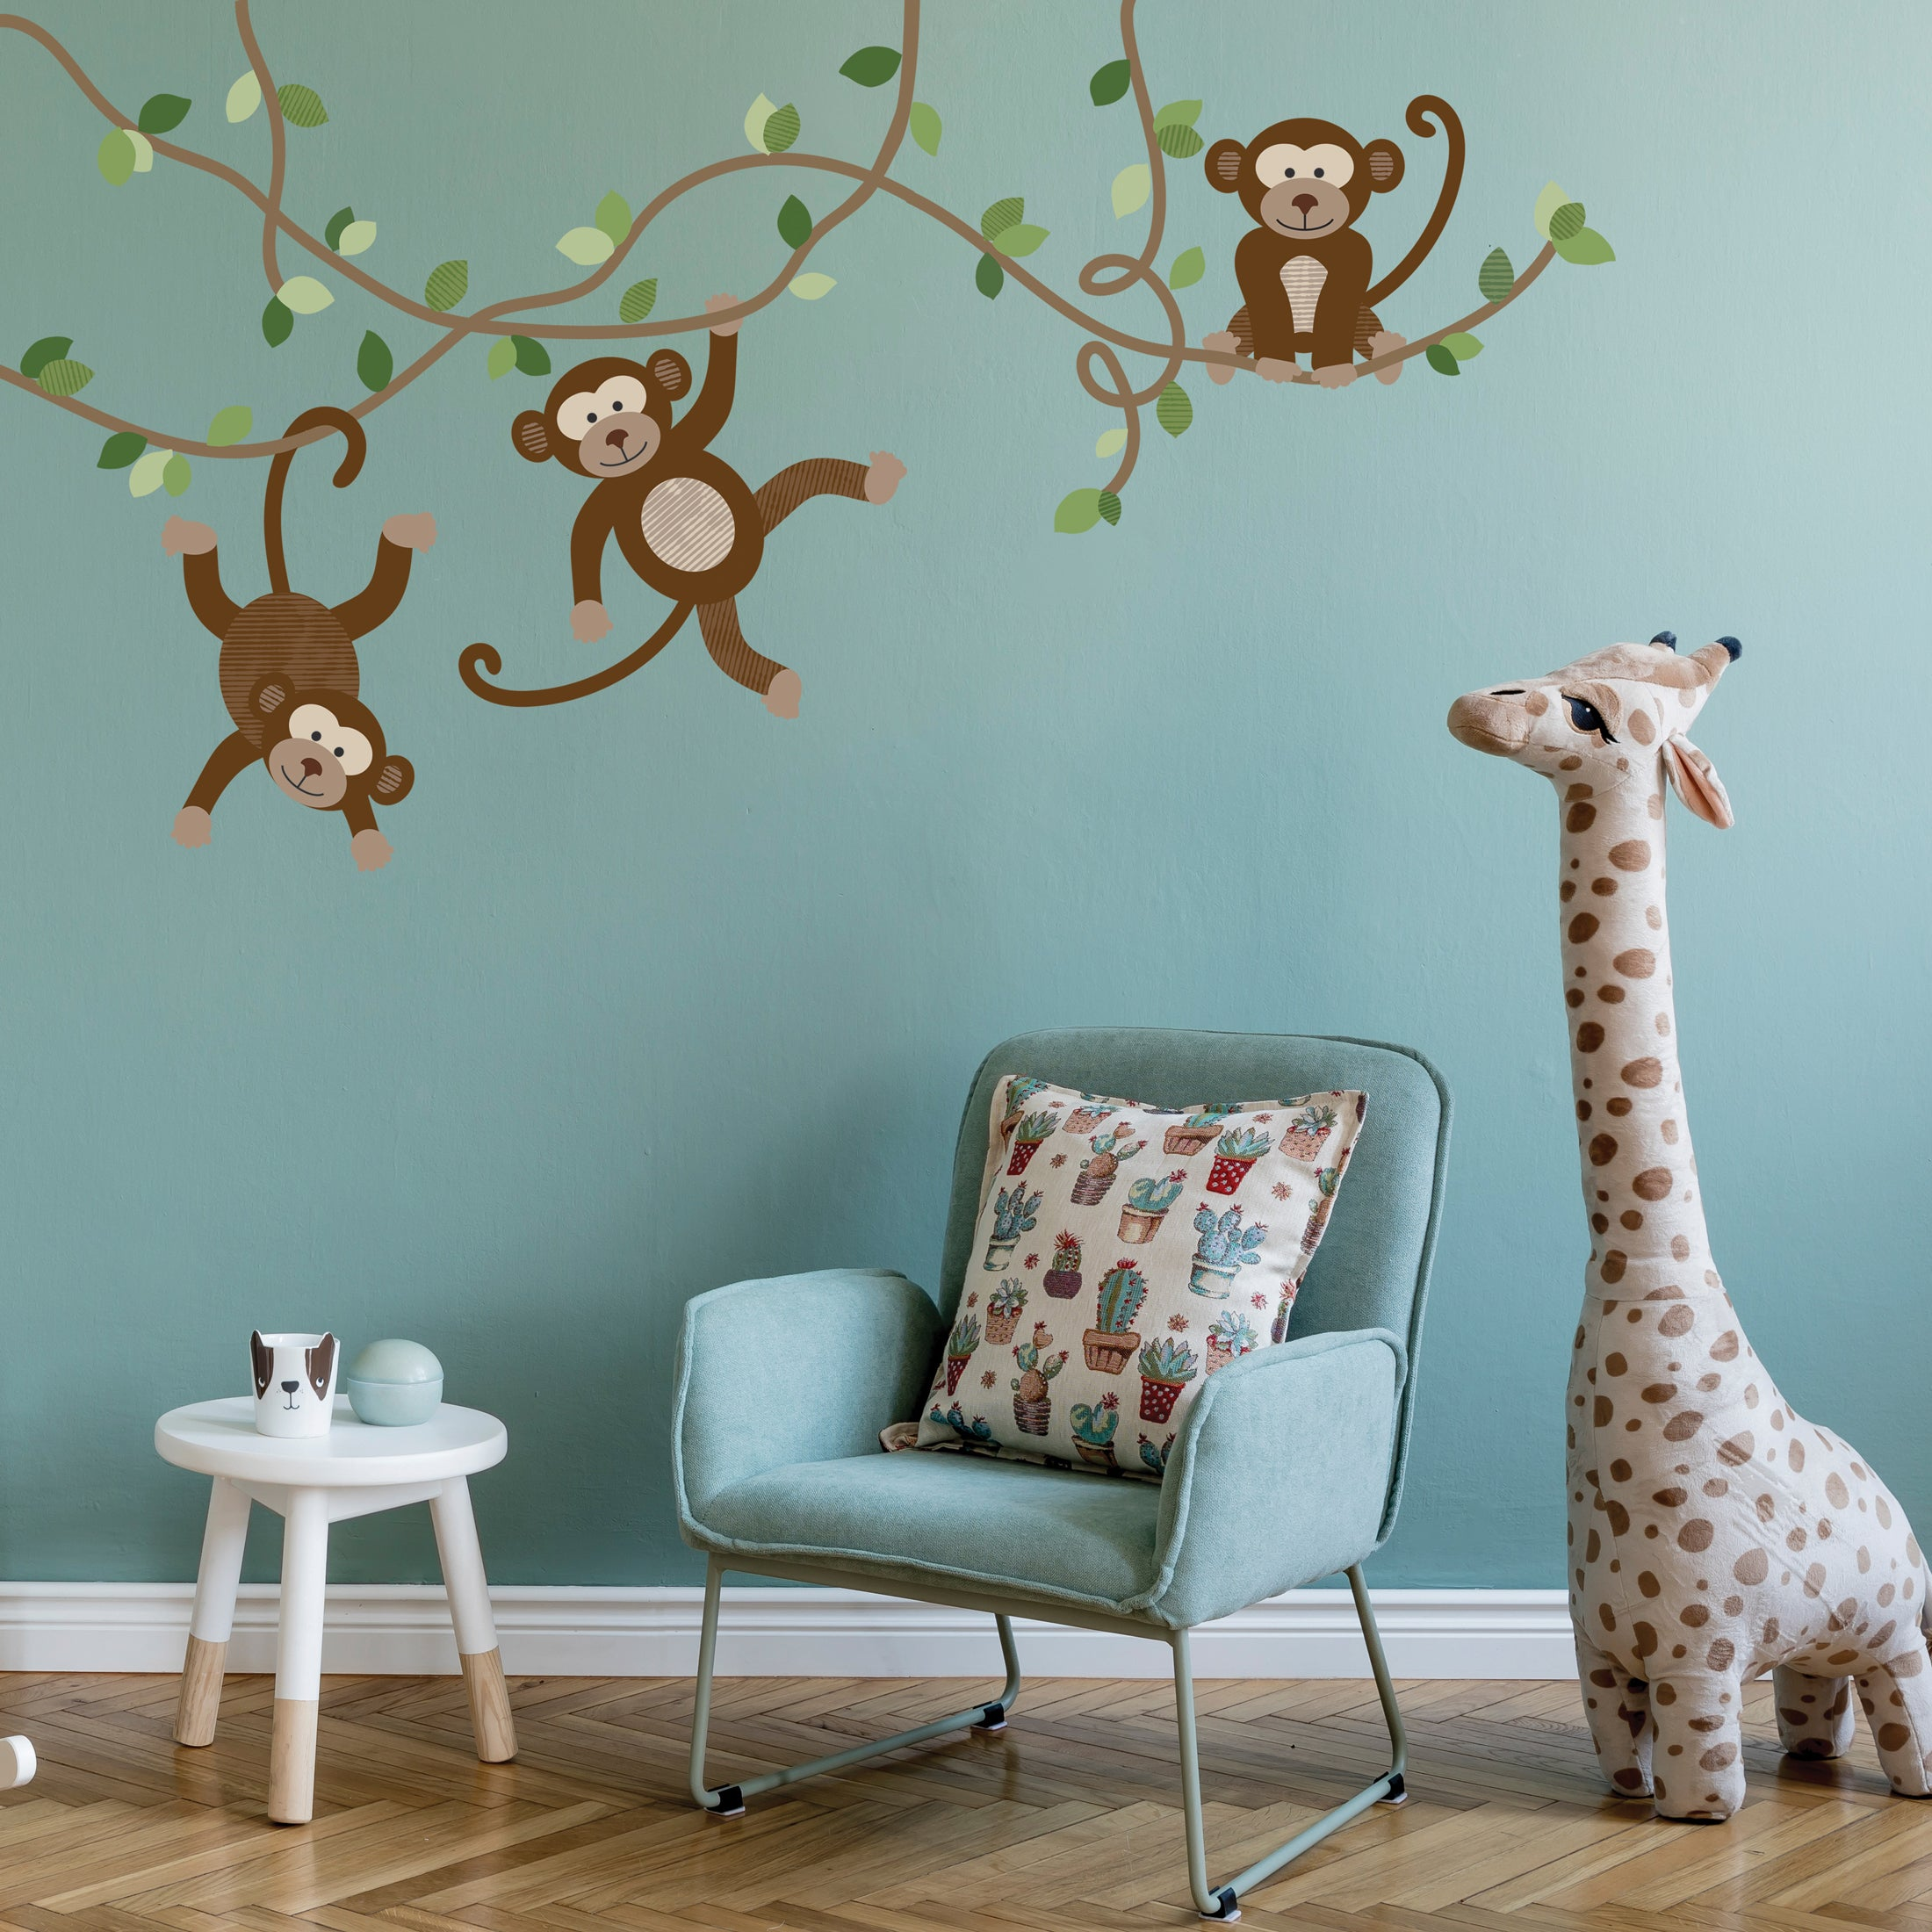 Monkey Decals Jungle Wall Stickers Nursery Wall Decals Repositionable